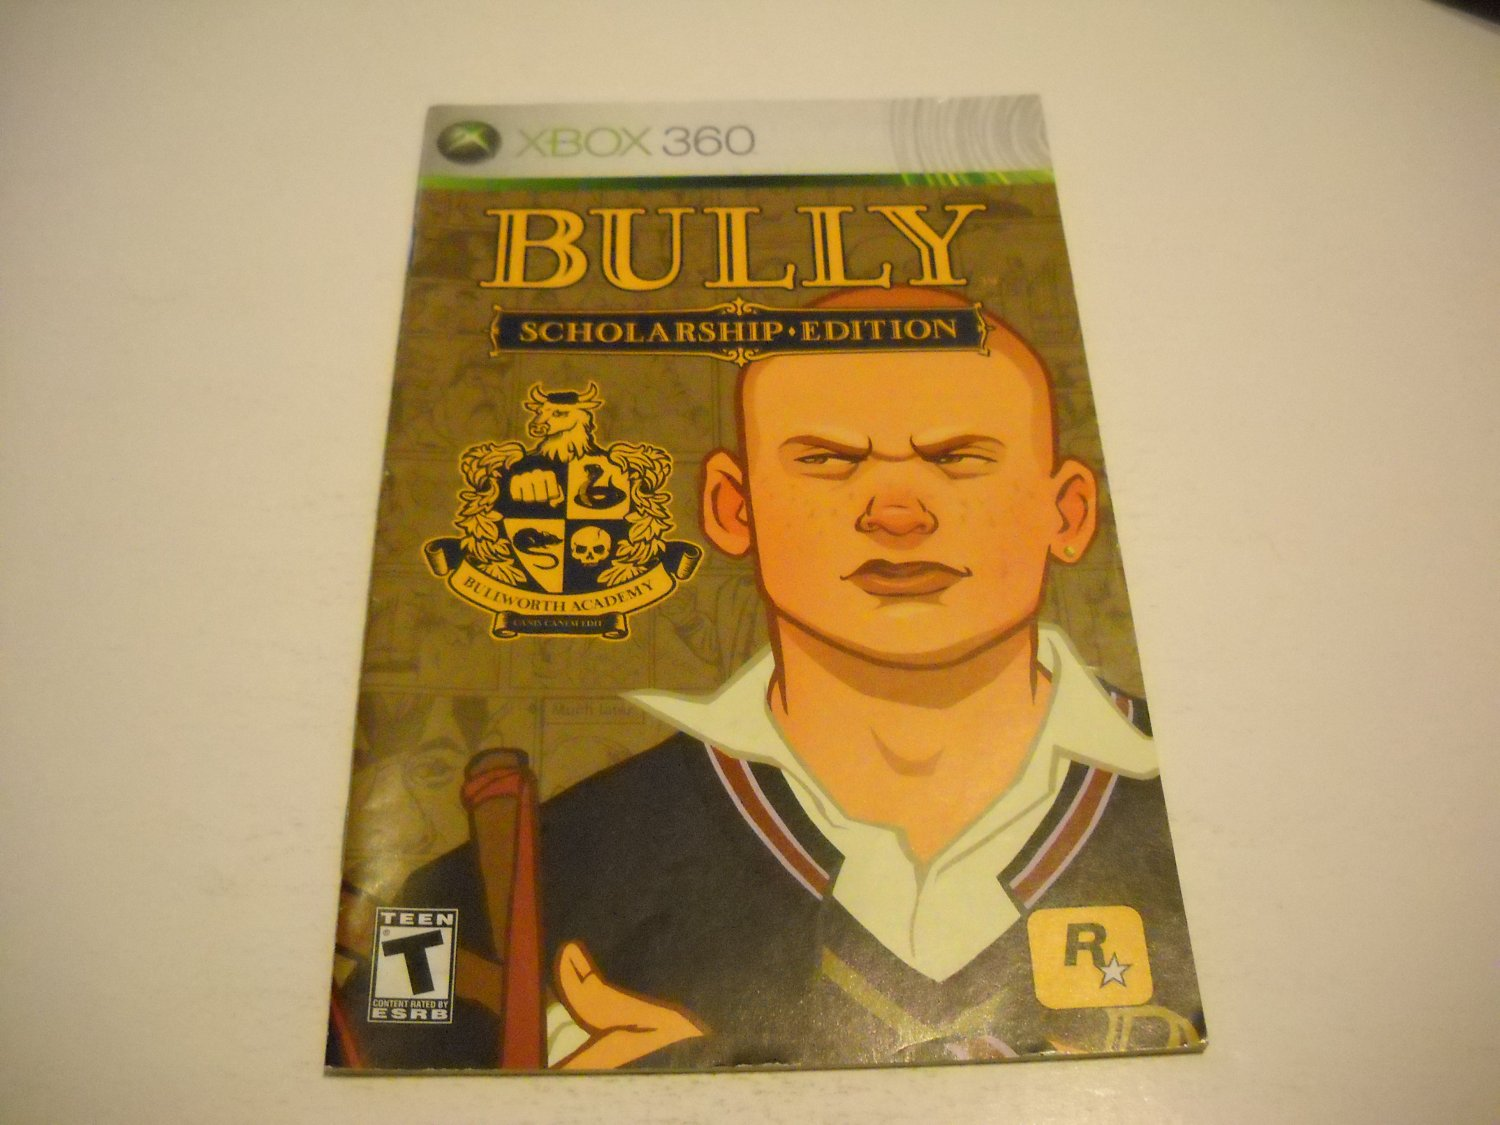 Manual ONLY ~  for Bully Scholarship Edition   - Xbox 360 Instruction Booklet